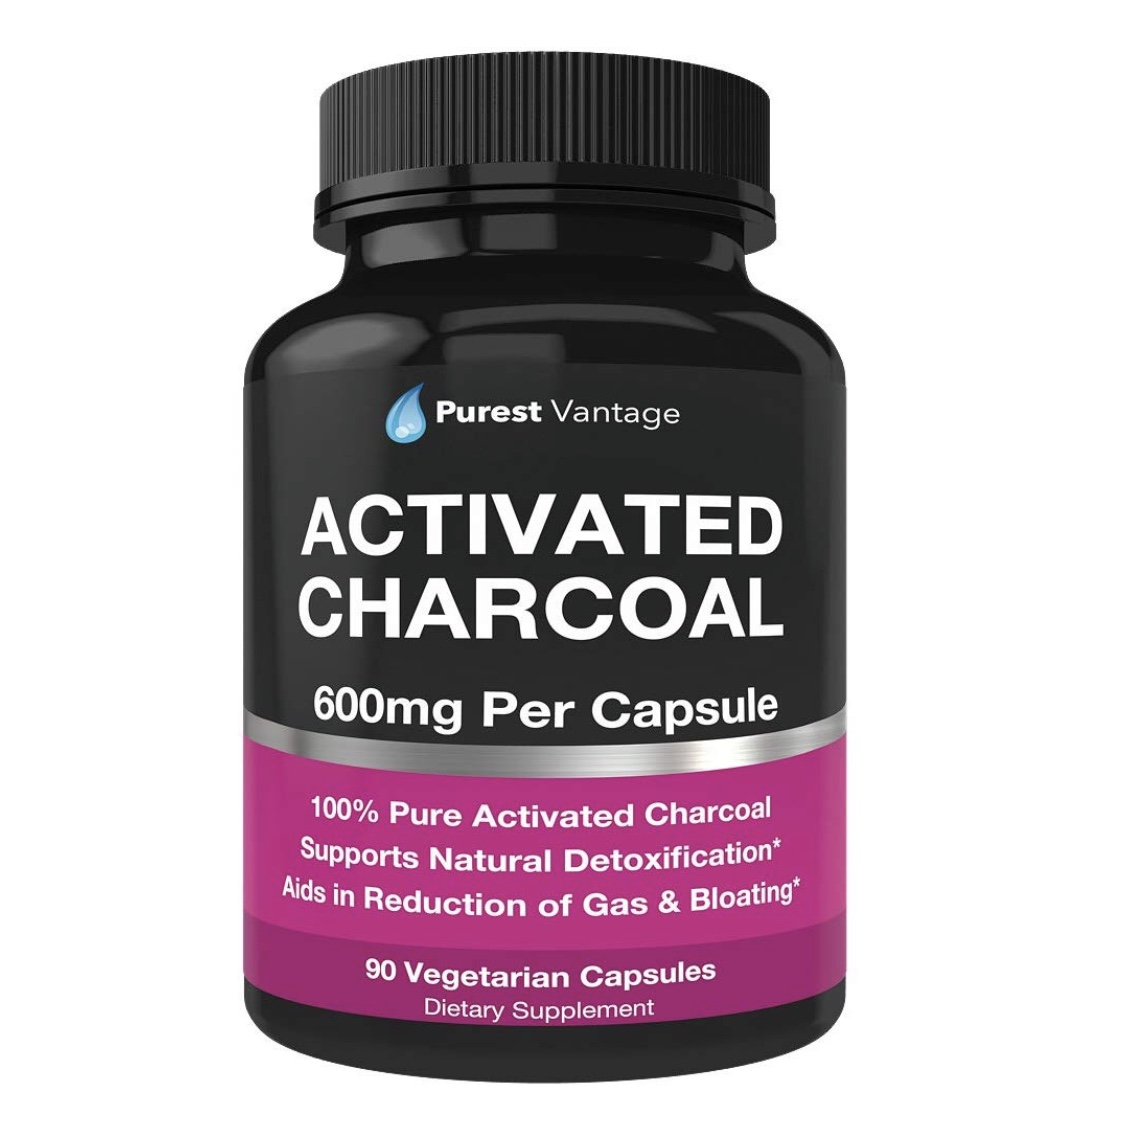 PUREST VANTAGEActivated Charcoal - - these 100% pure organic activated charcoal capsules should be in EVERY medicine cabinet at all times- effective treatment for food poisoning, drug overdoses, stomach bugs, nausea, vomiting, hangovers, and the stomach flu- quickly reduces gas and bloating- detoxify your body- can be used to whiten teeth